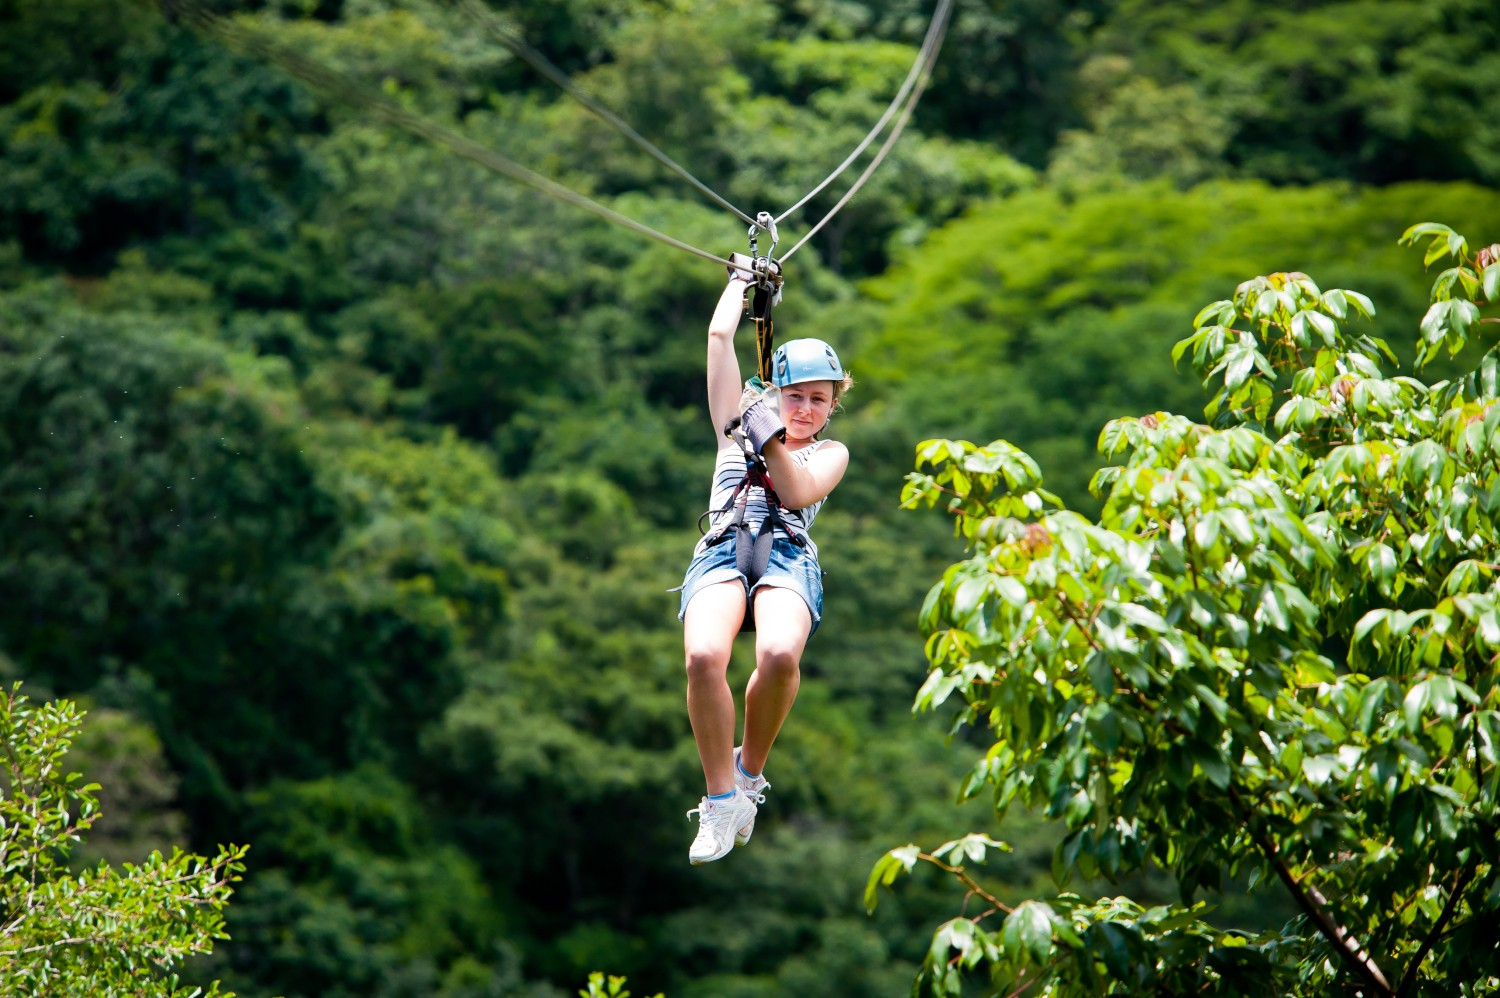 Zip lining in the Costa Rican rainforest